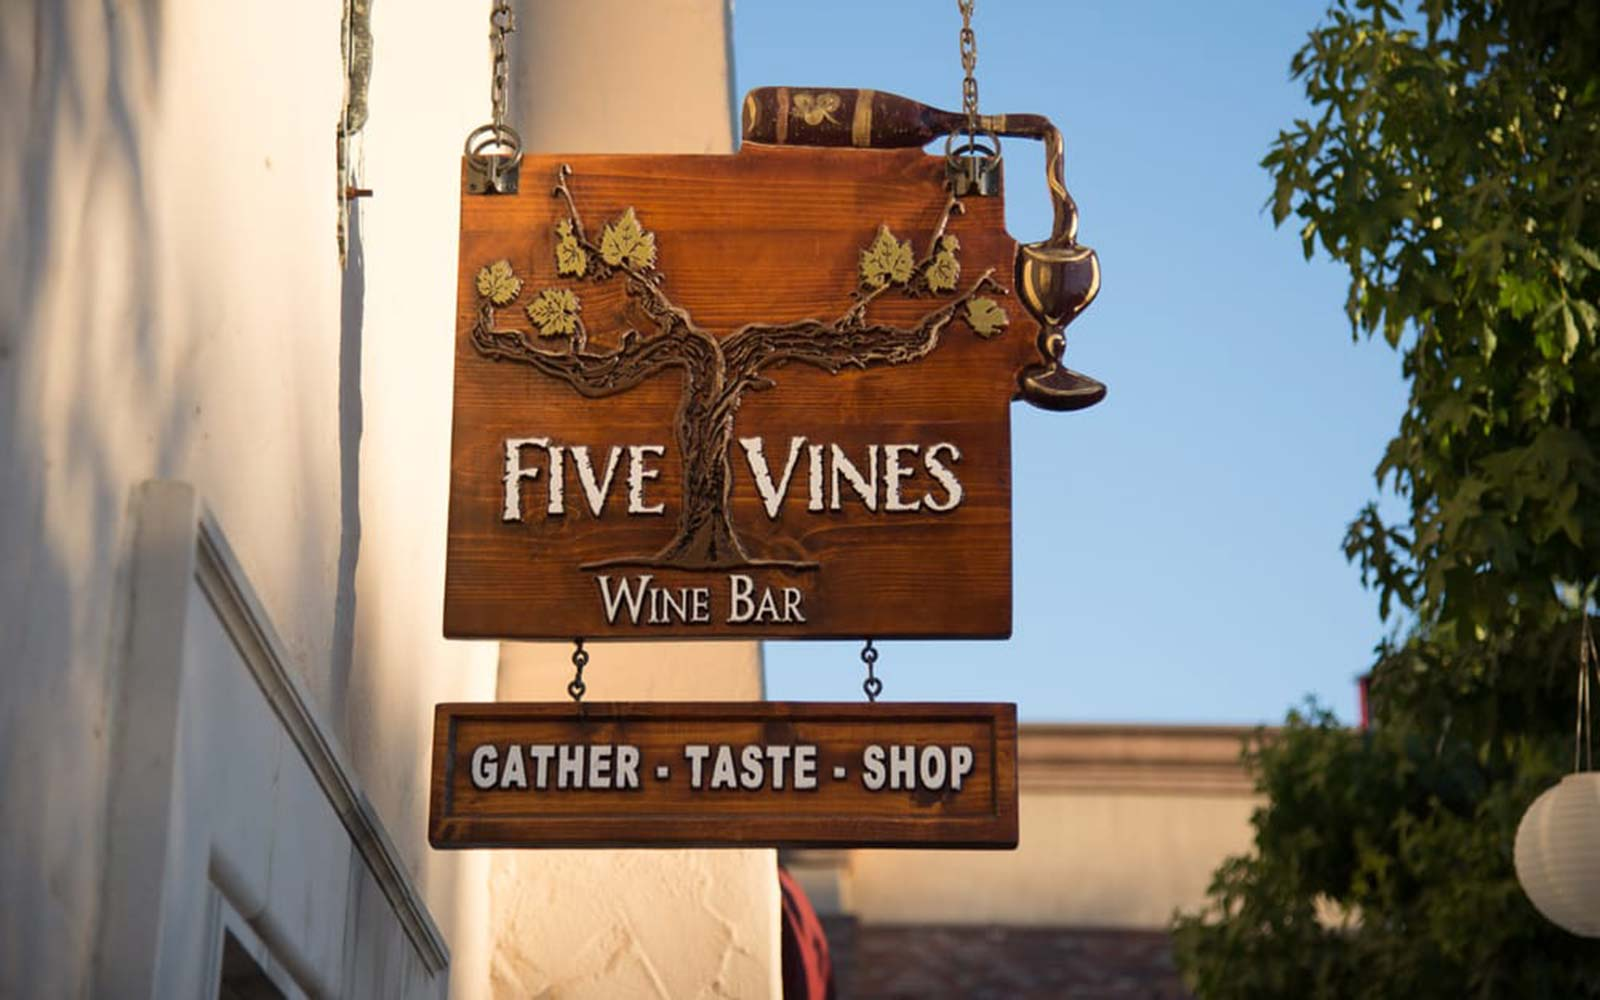 five vines wine san juan capistrano california